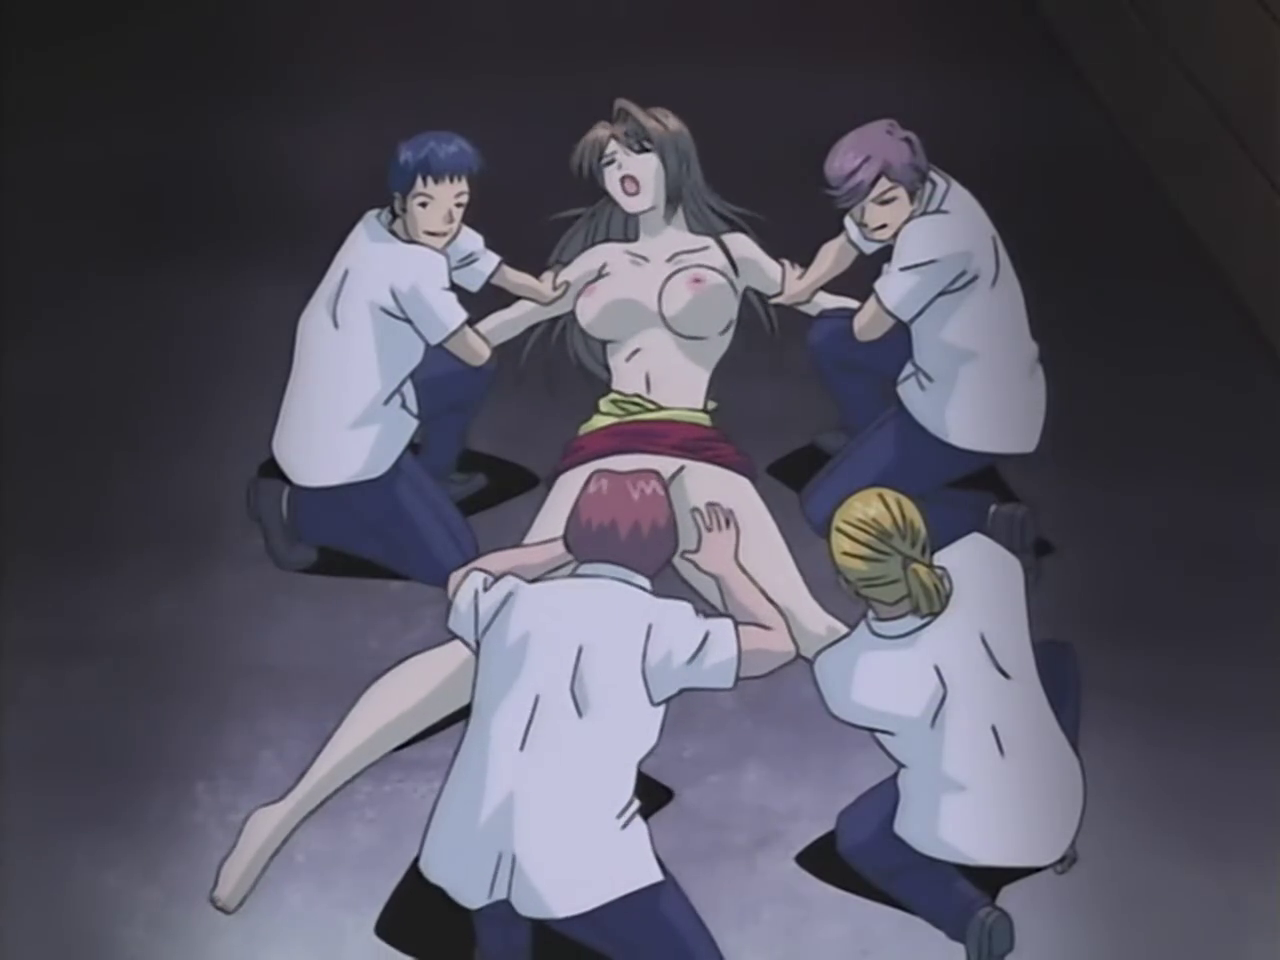 Hot juicy teacher free hentai